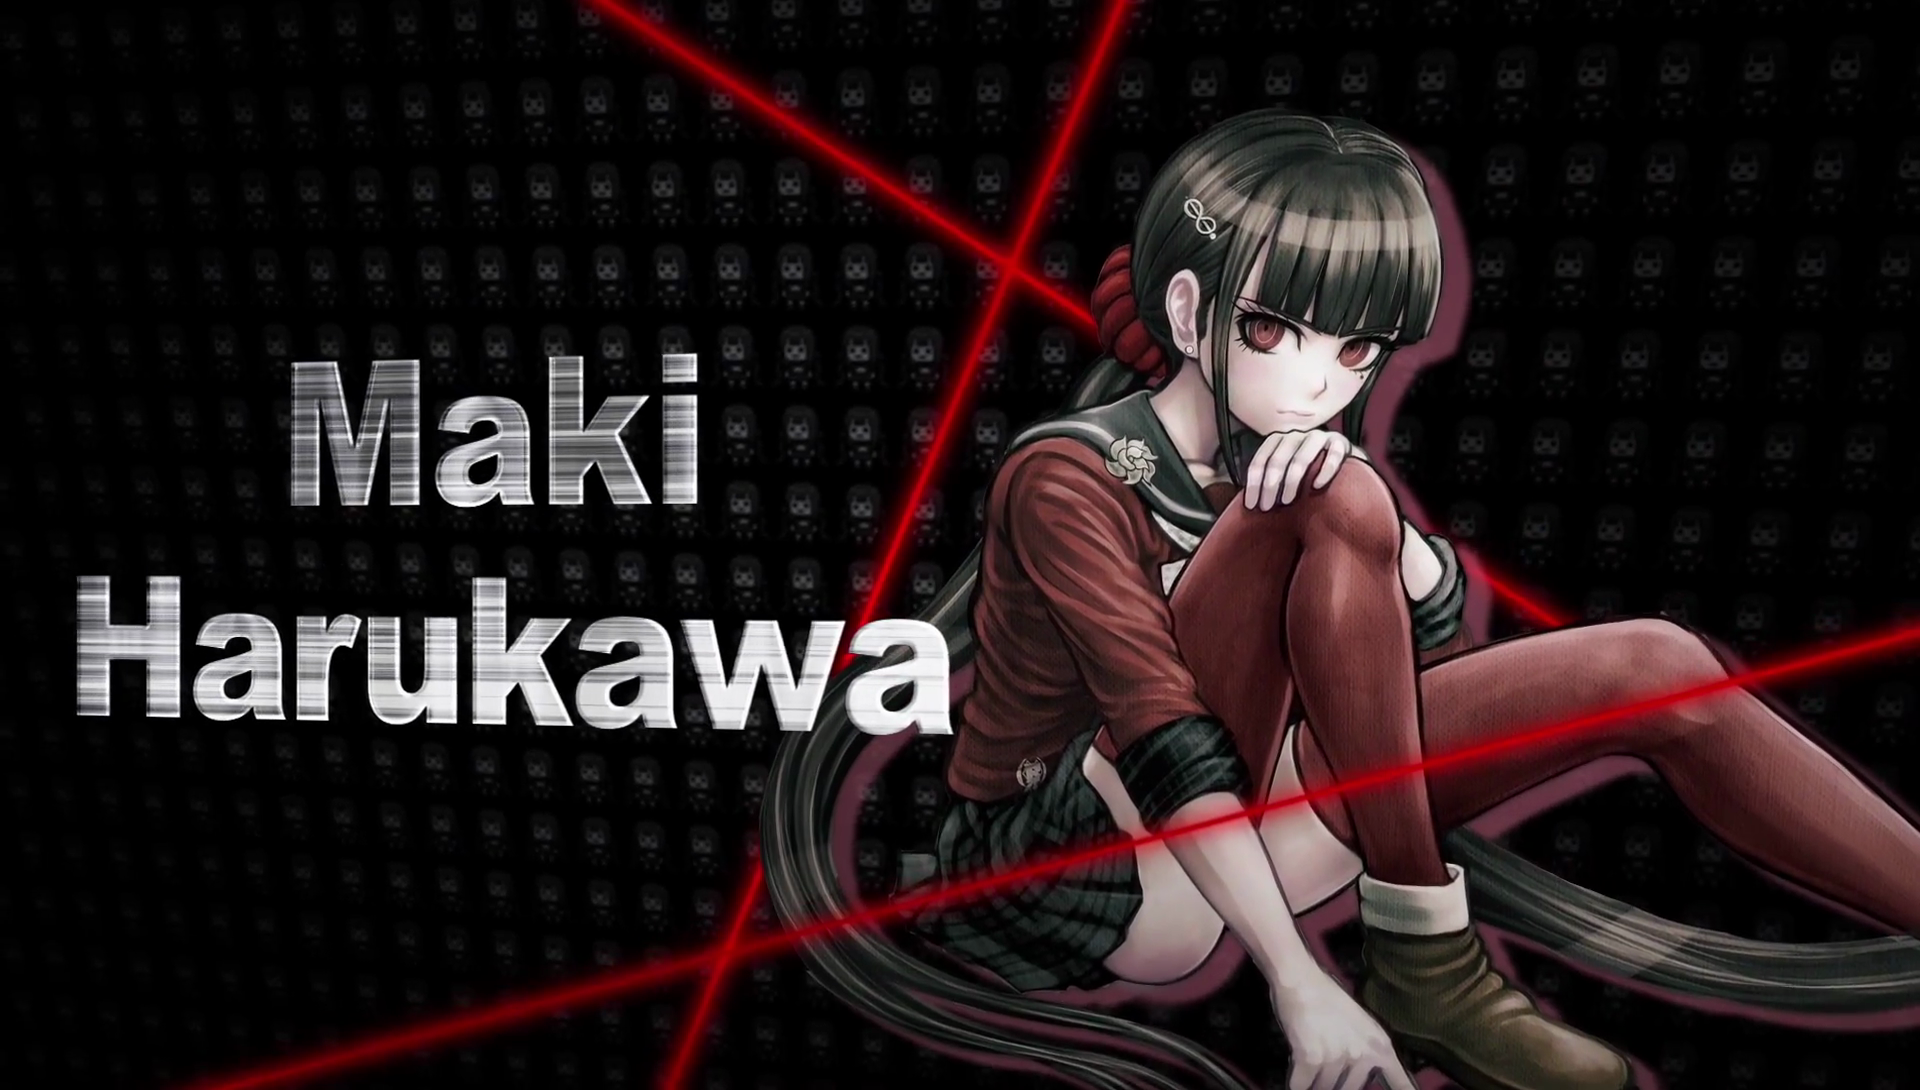 Danganronpa V3 Gift Guide: What to Give Characters to Make Them ...